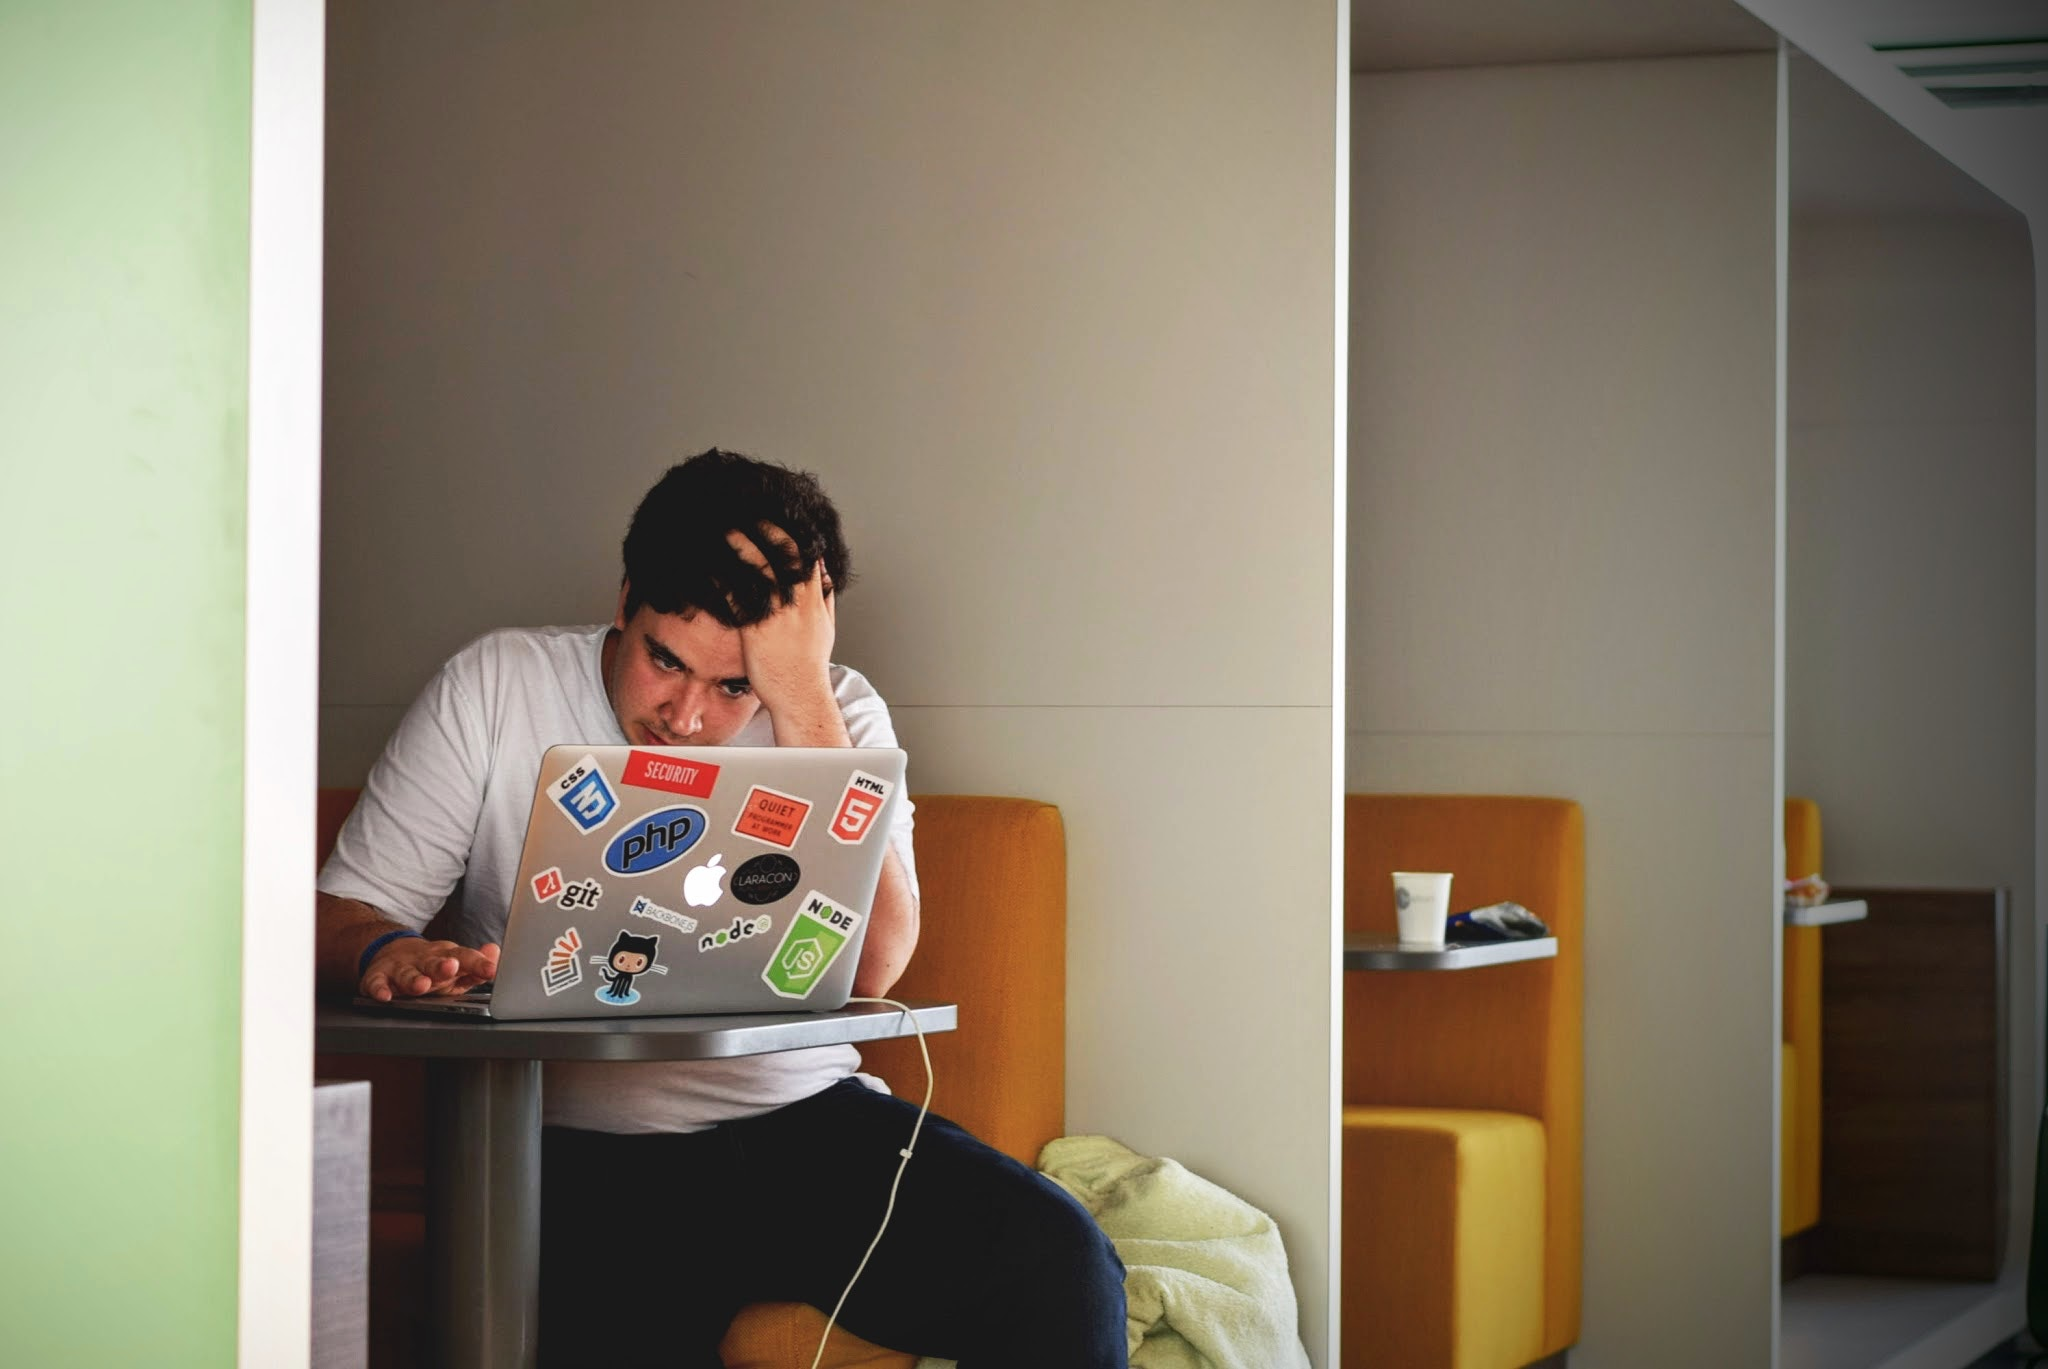 stressed dude on computer